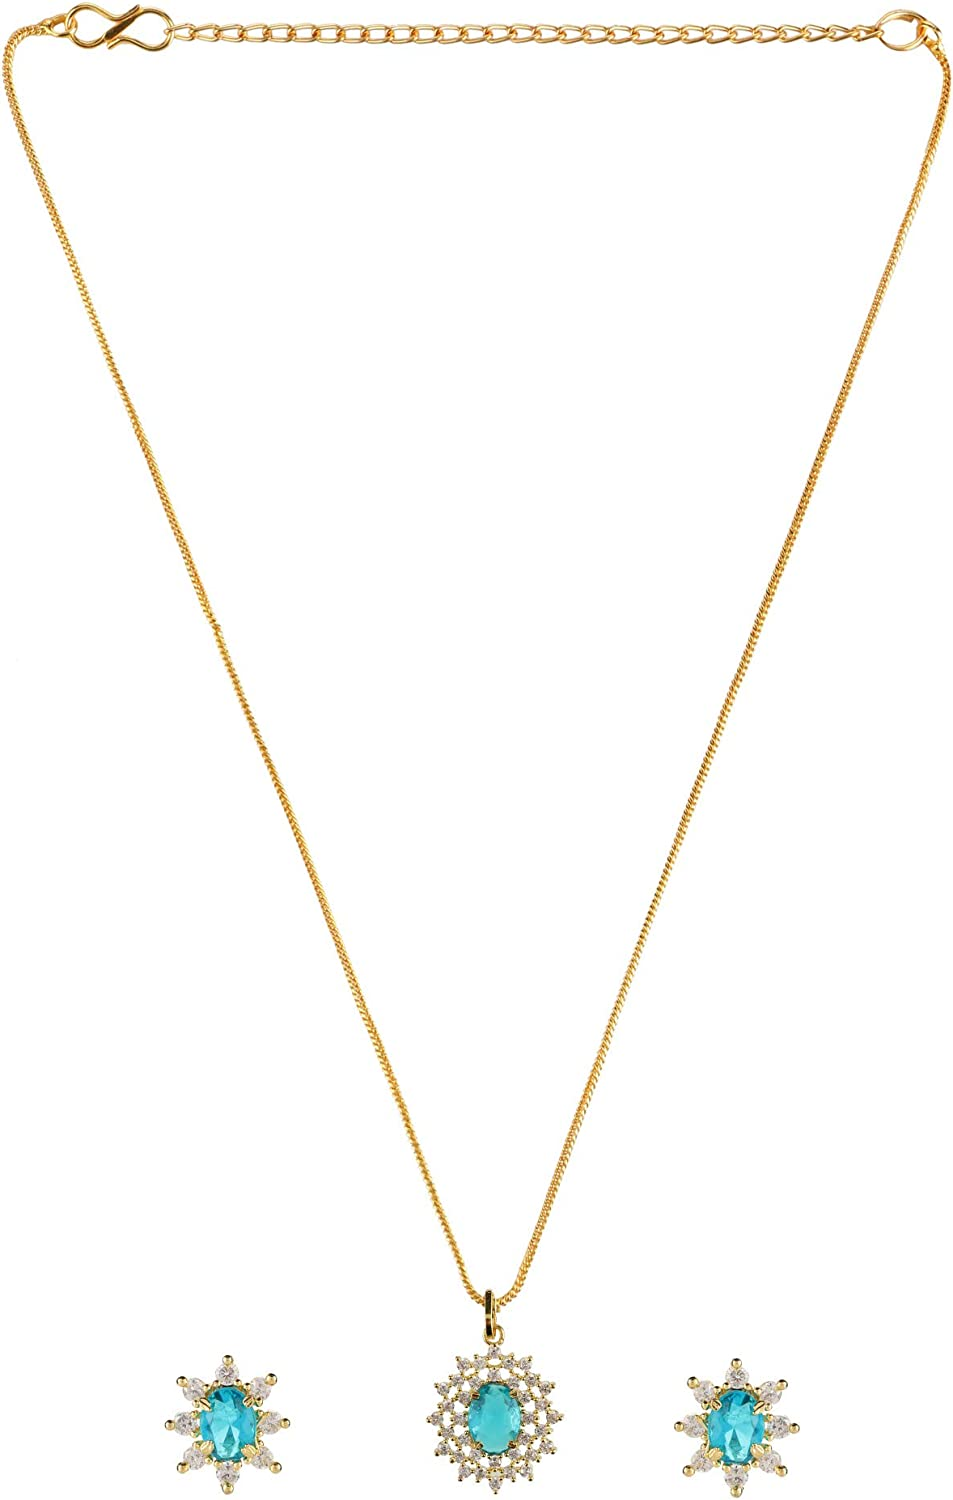 Efulgenz Bridal 14 K Gold Plated Red Crystal Cubic Zirconia Pendant Chain Necklace Earrings Jewelry Set for Women Girls Bride Bridesmaids